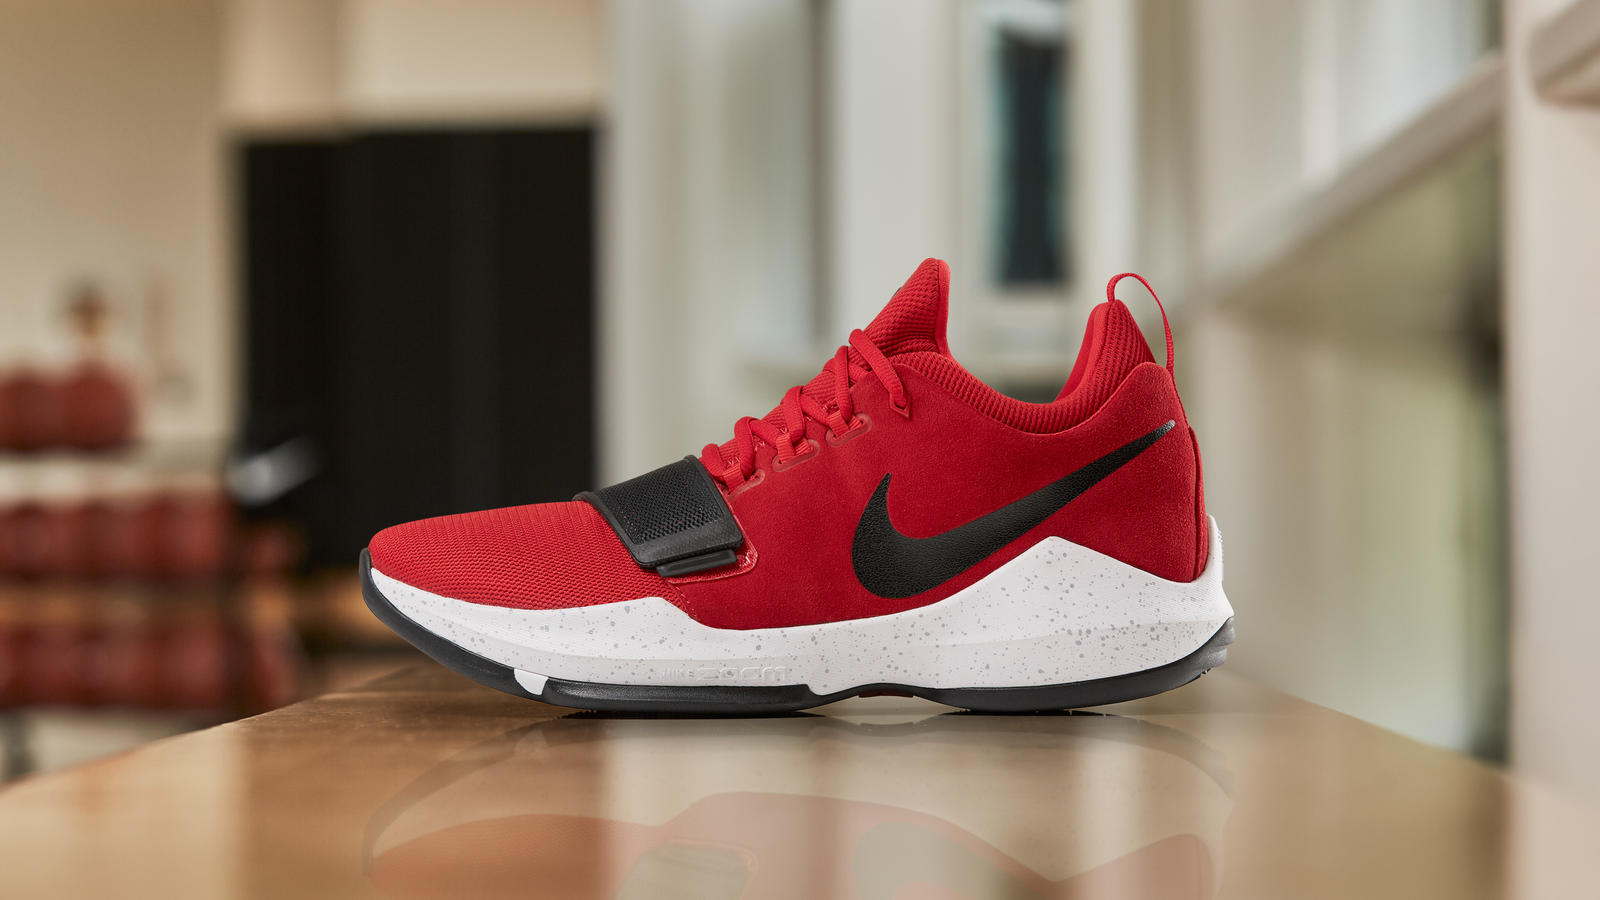 Pg1 red 3 hd 1600